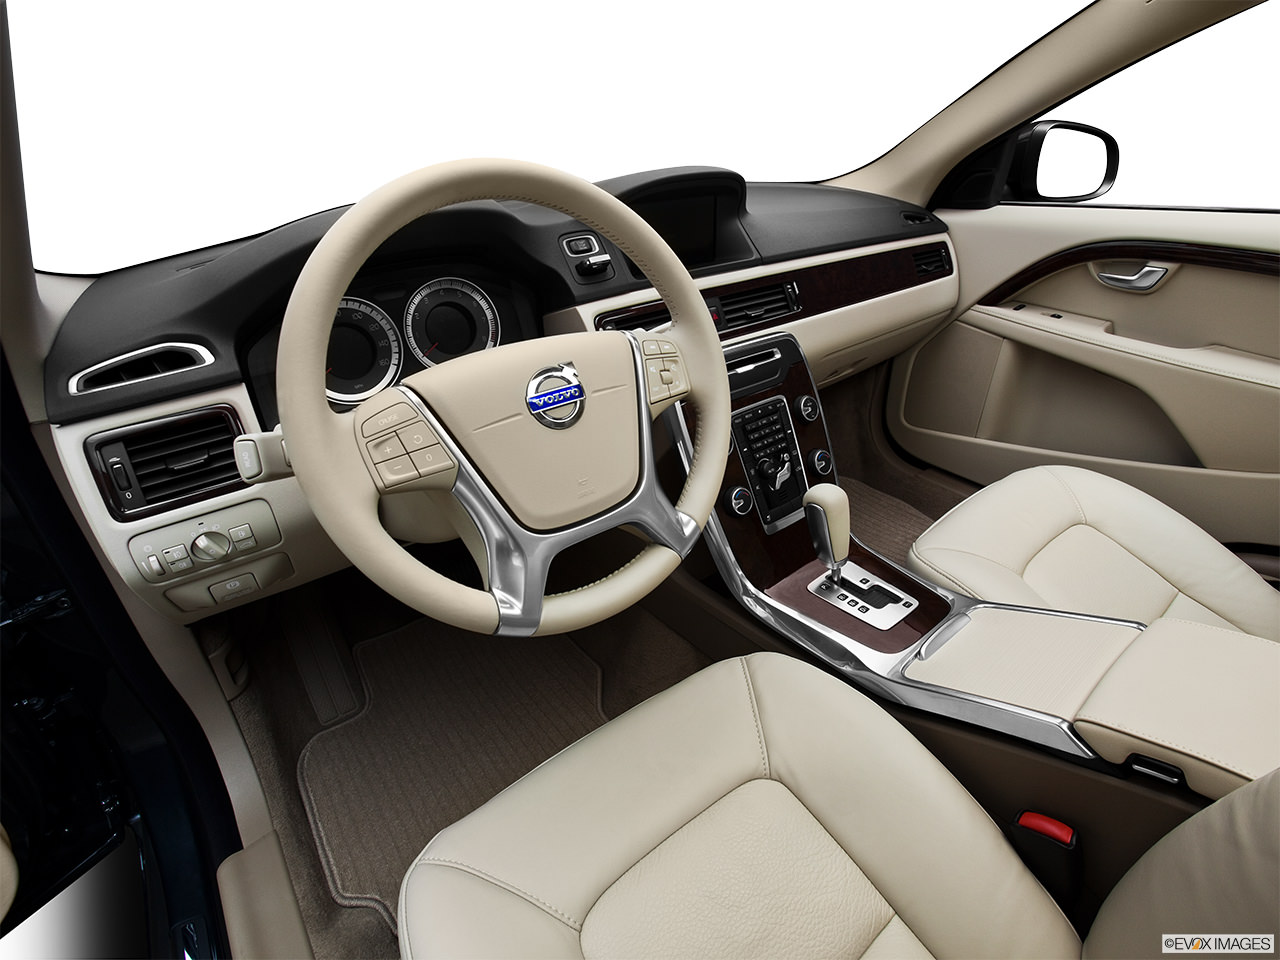 A Buyer's Guide to the 2012 Volvo S80 | YourMechanic Advice